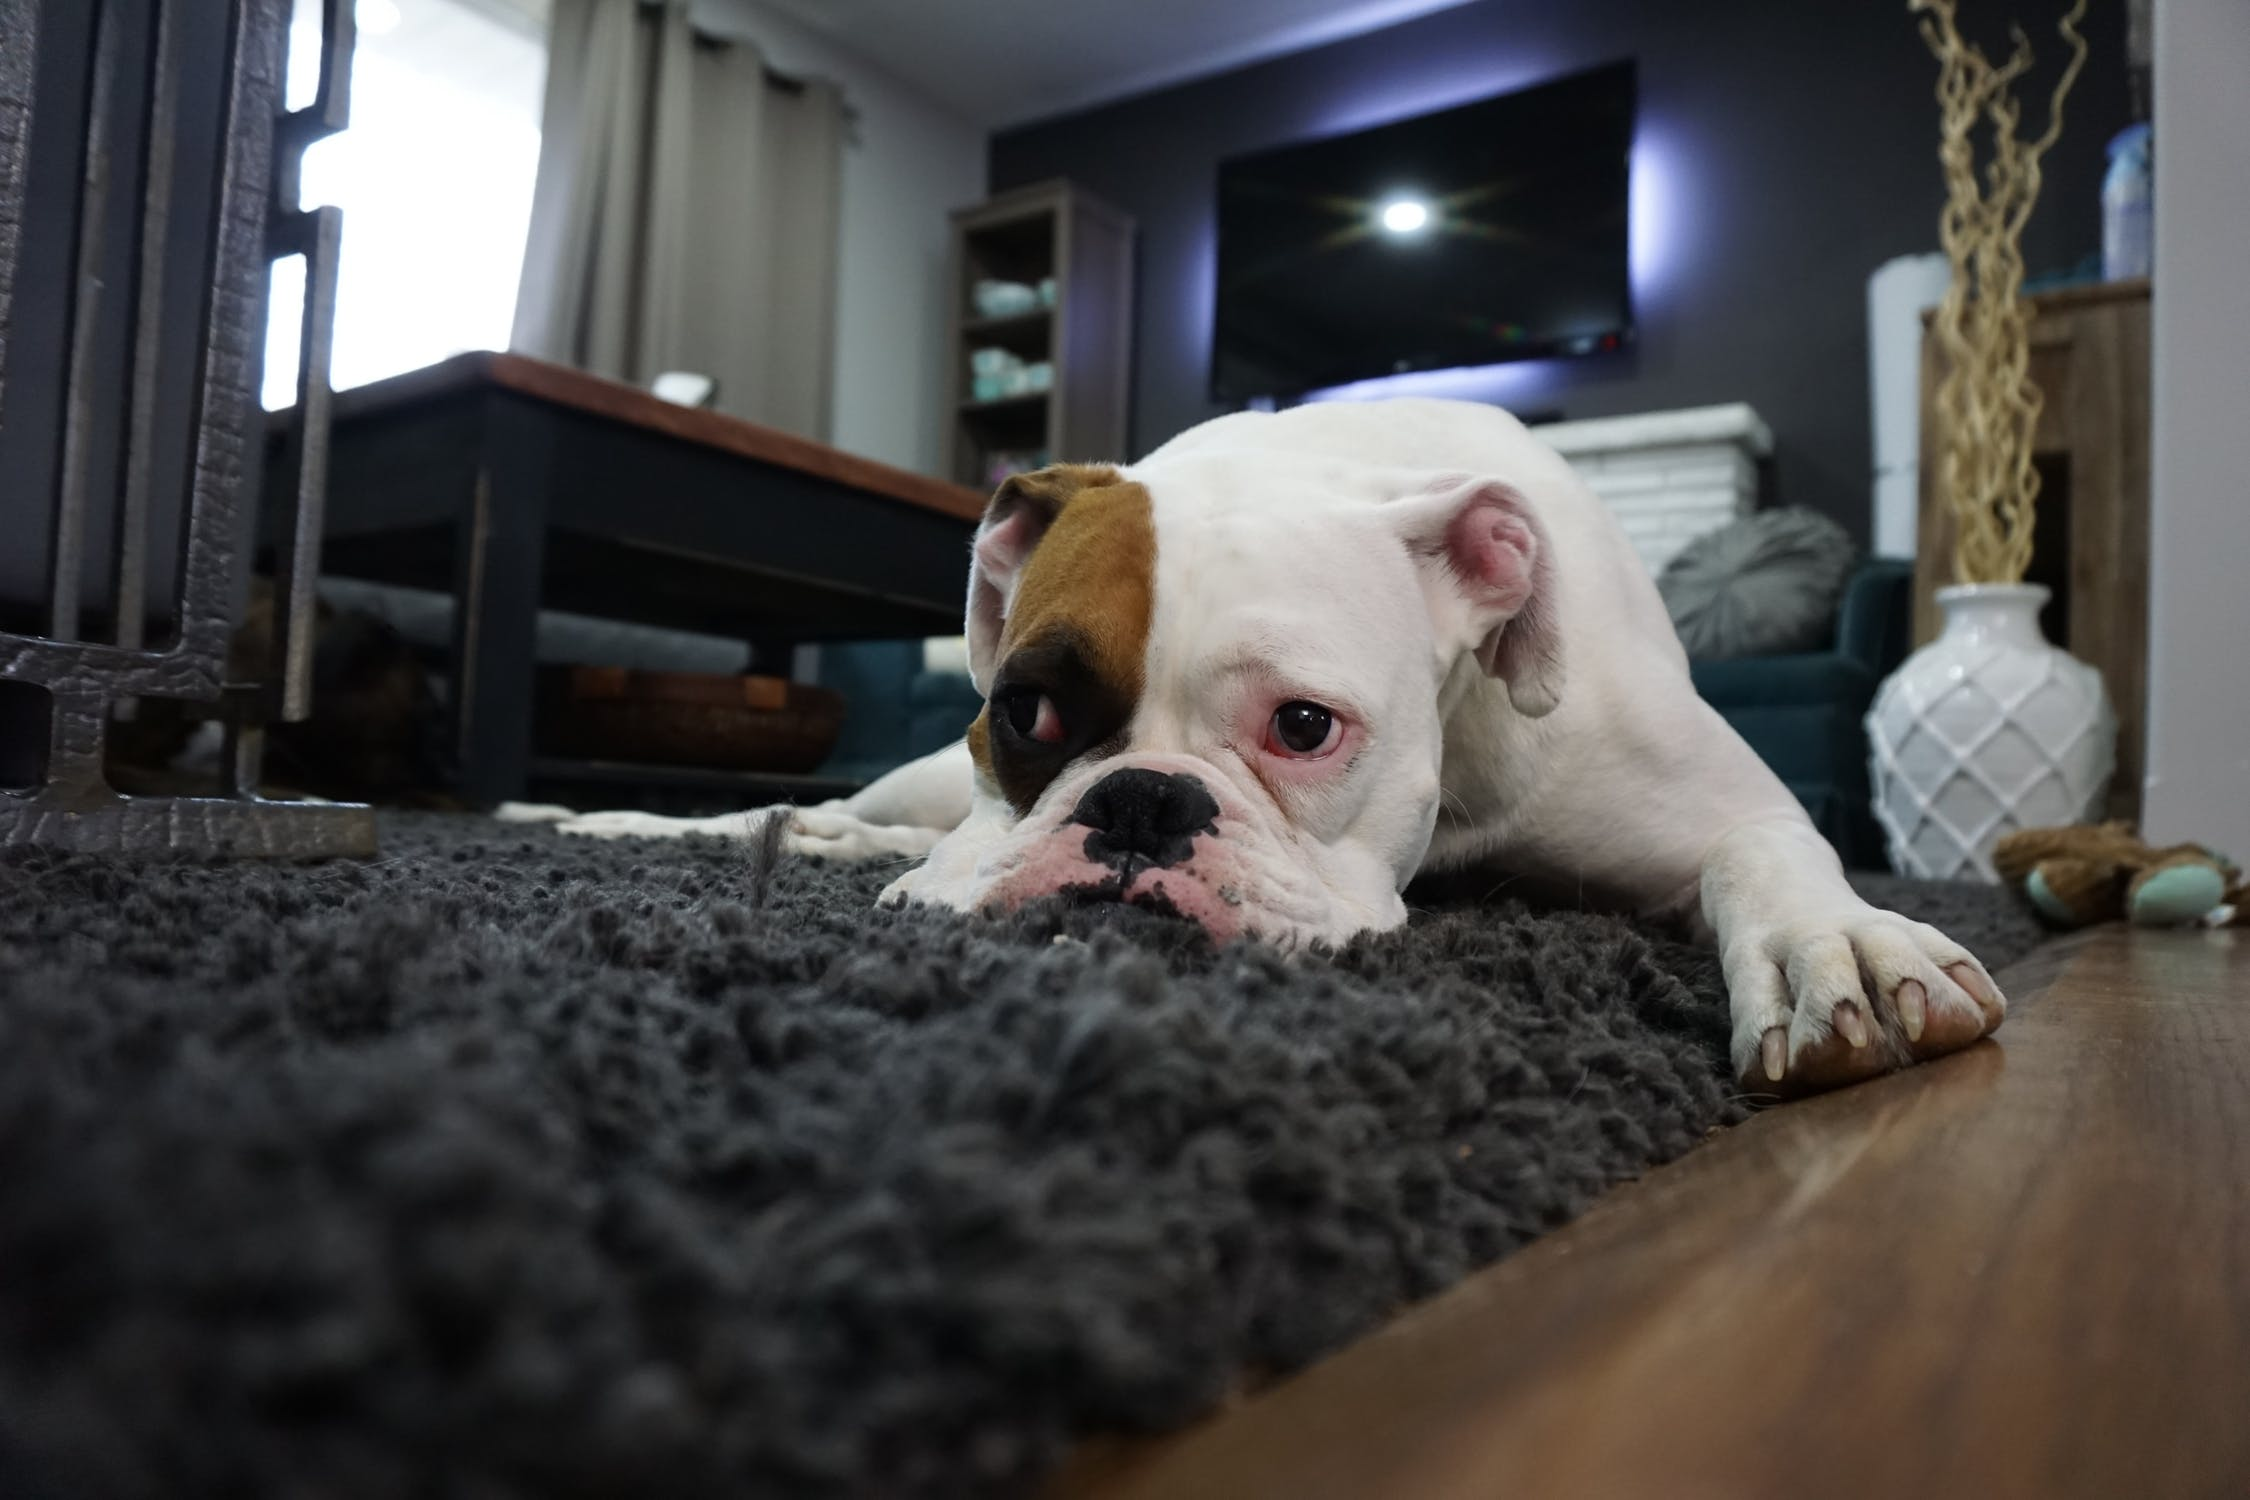 6 Ideas to remove pet hair and keep home clean